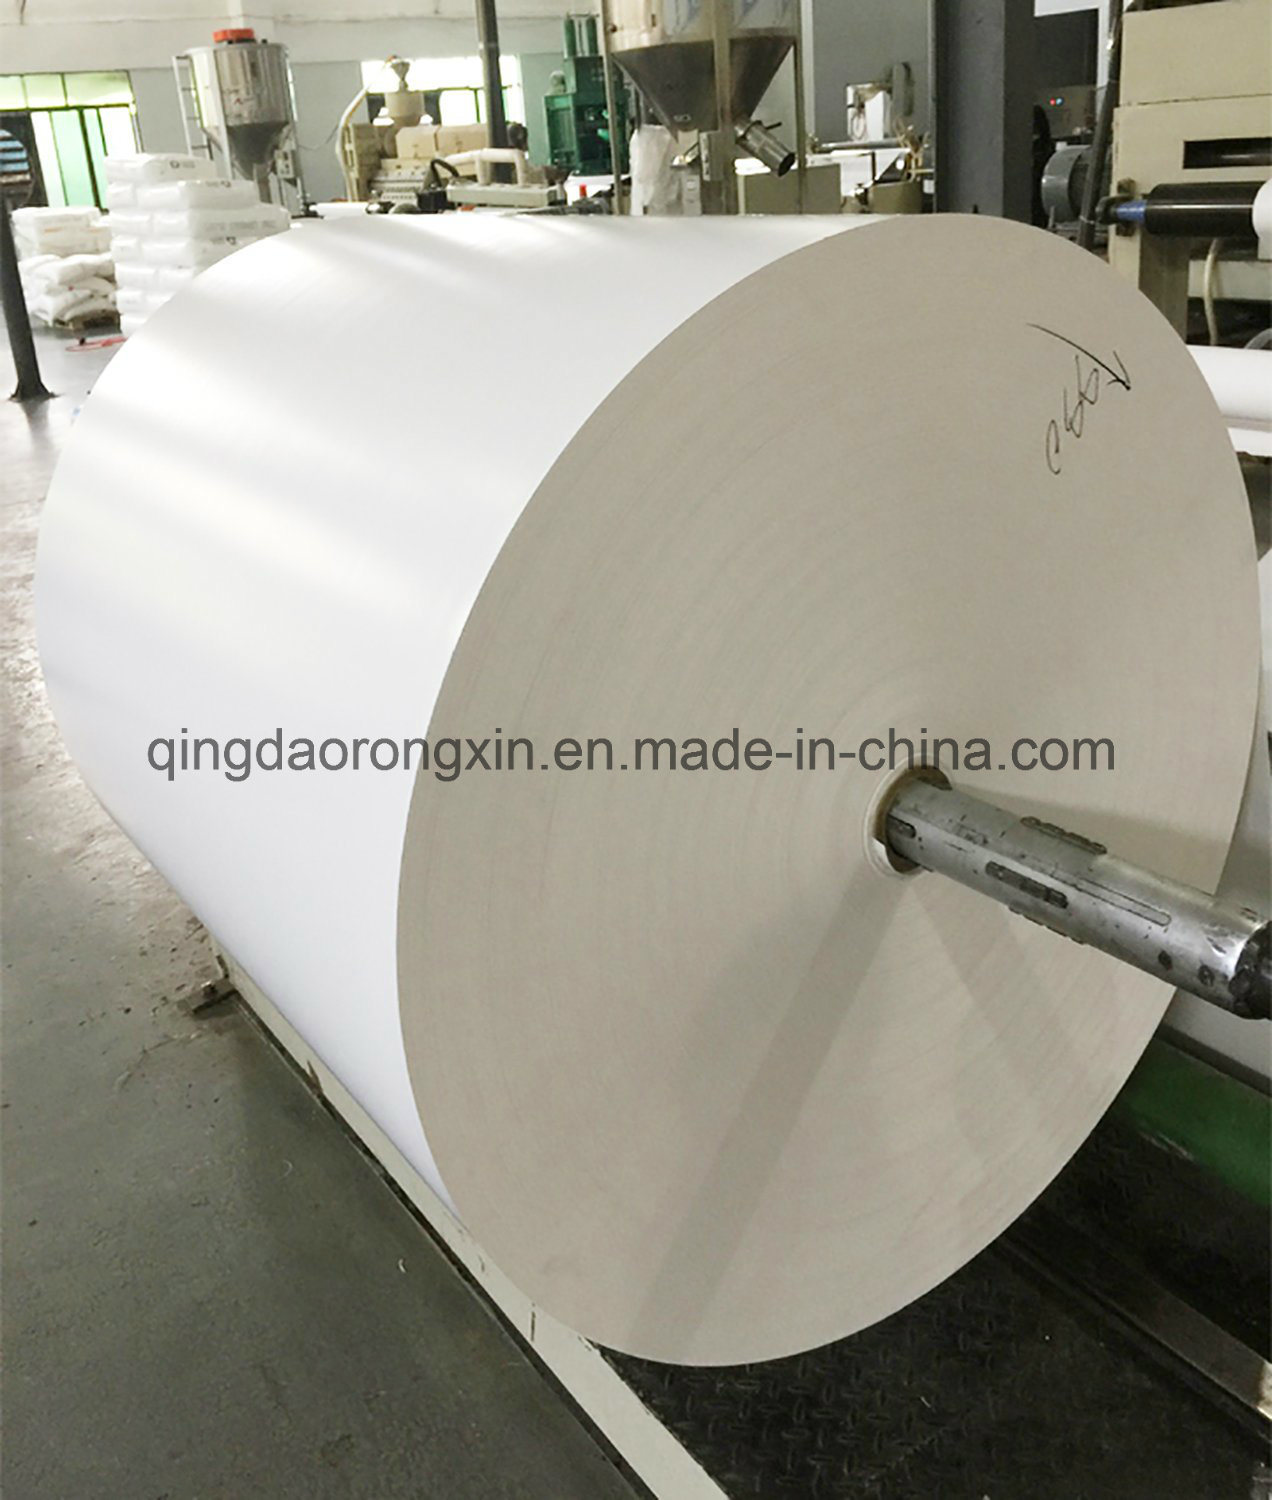 Food Grade PE Coated Paper for Fast Food Packaging pictures & photos